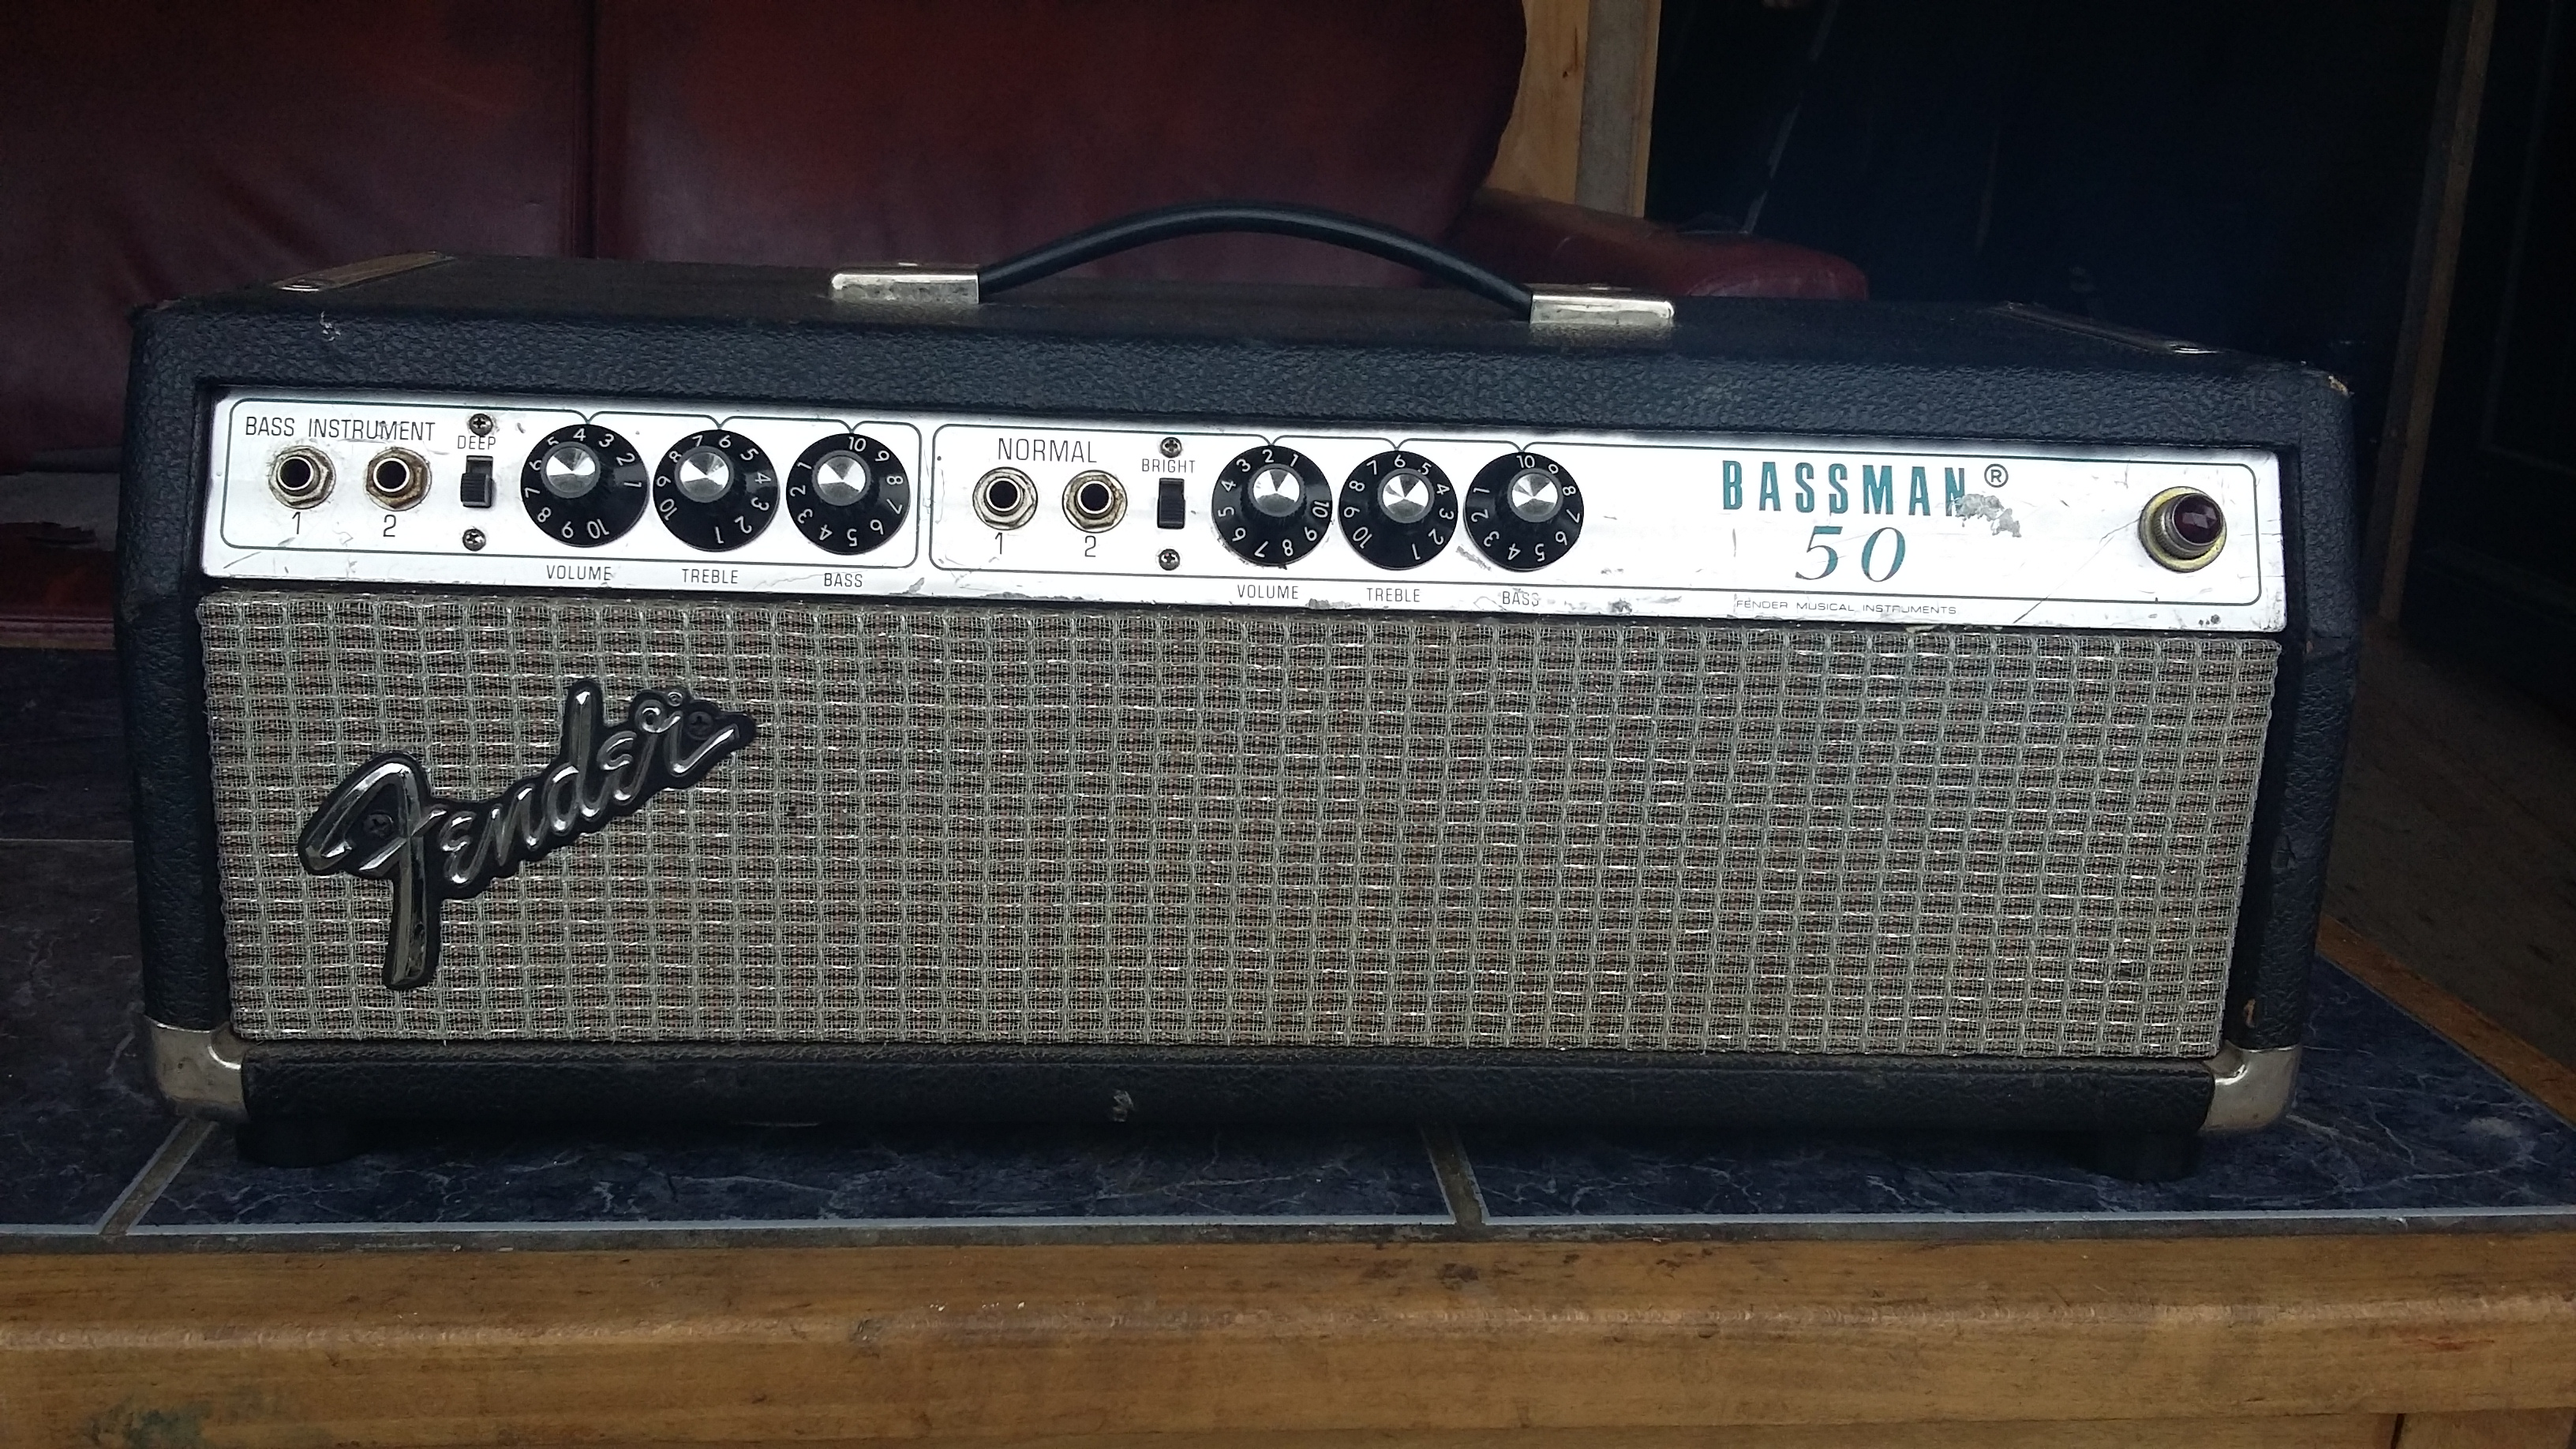 Dating silverface bassman 50